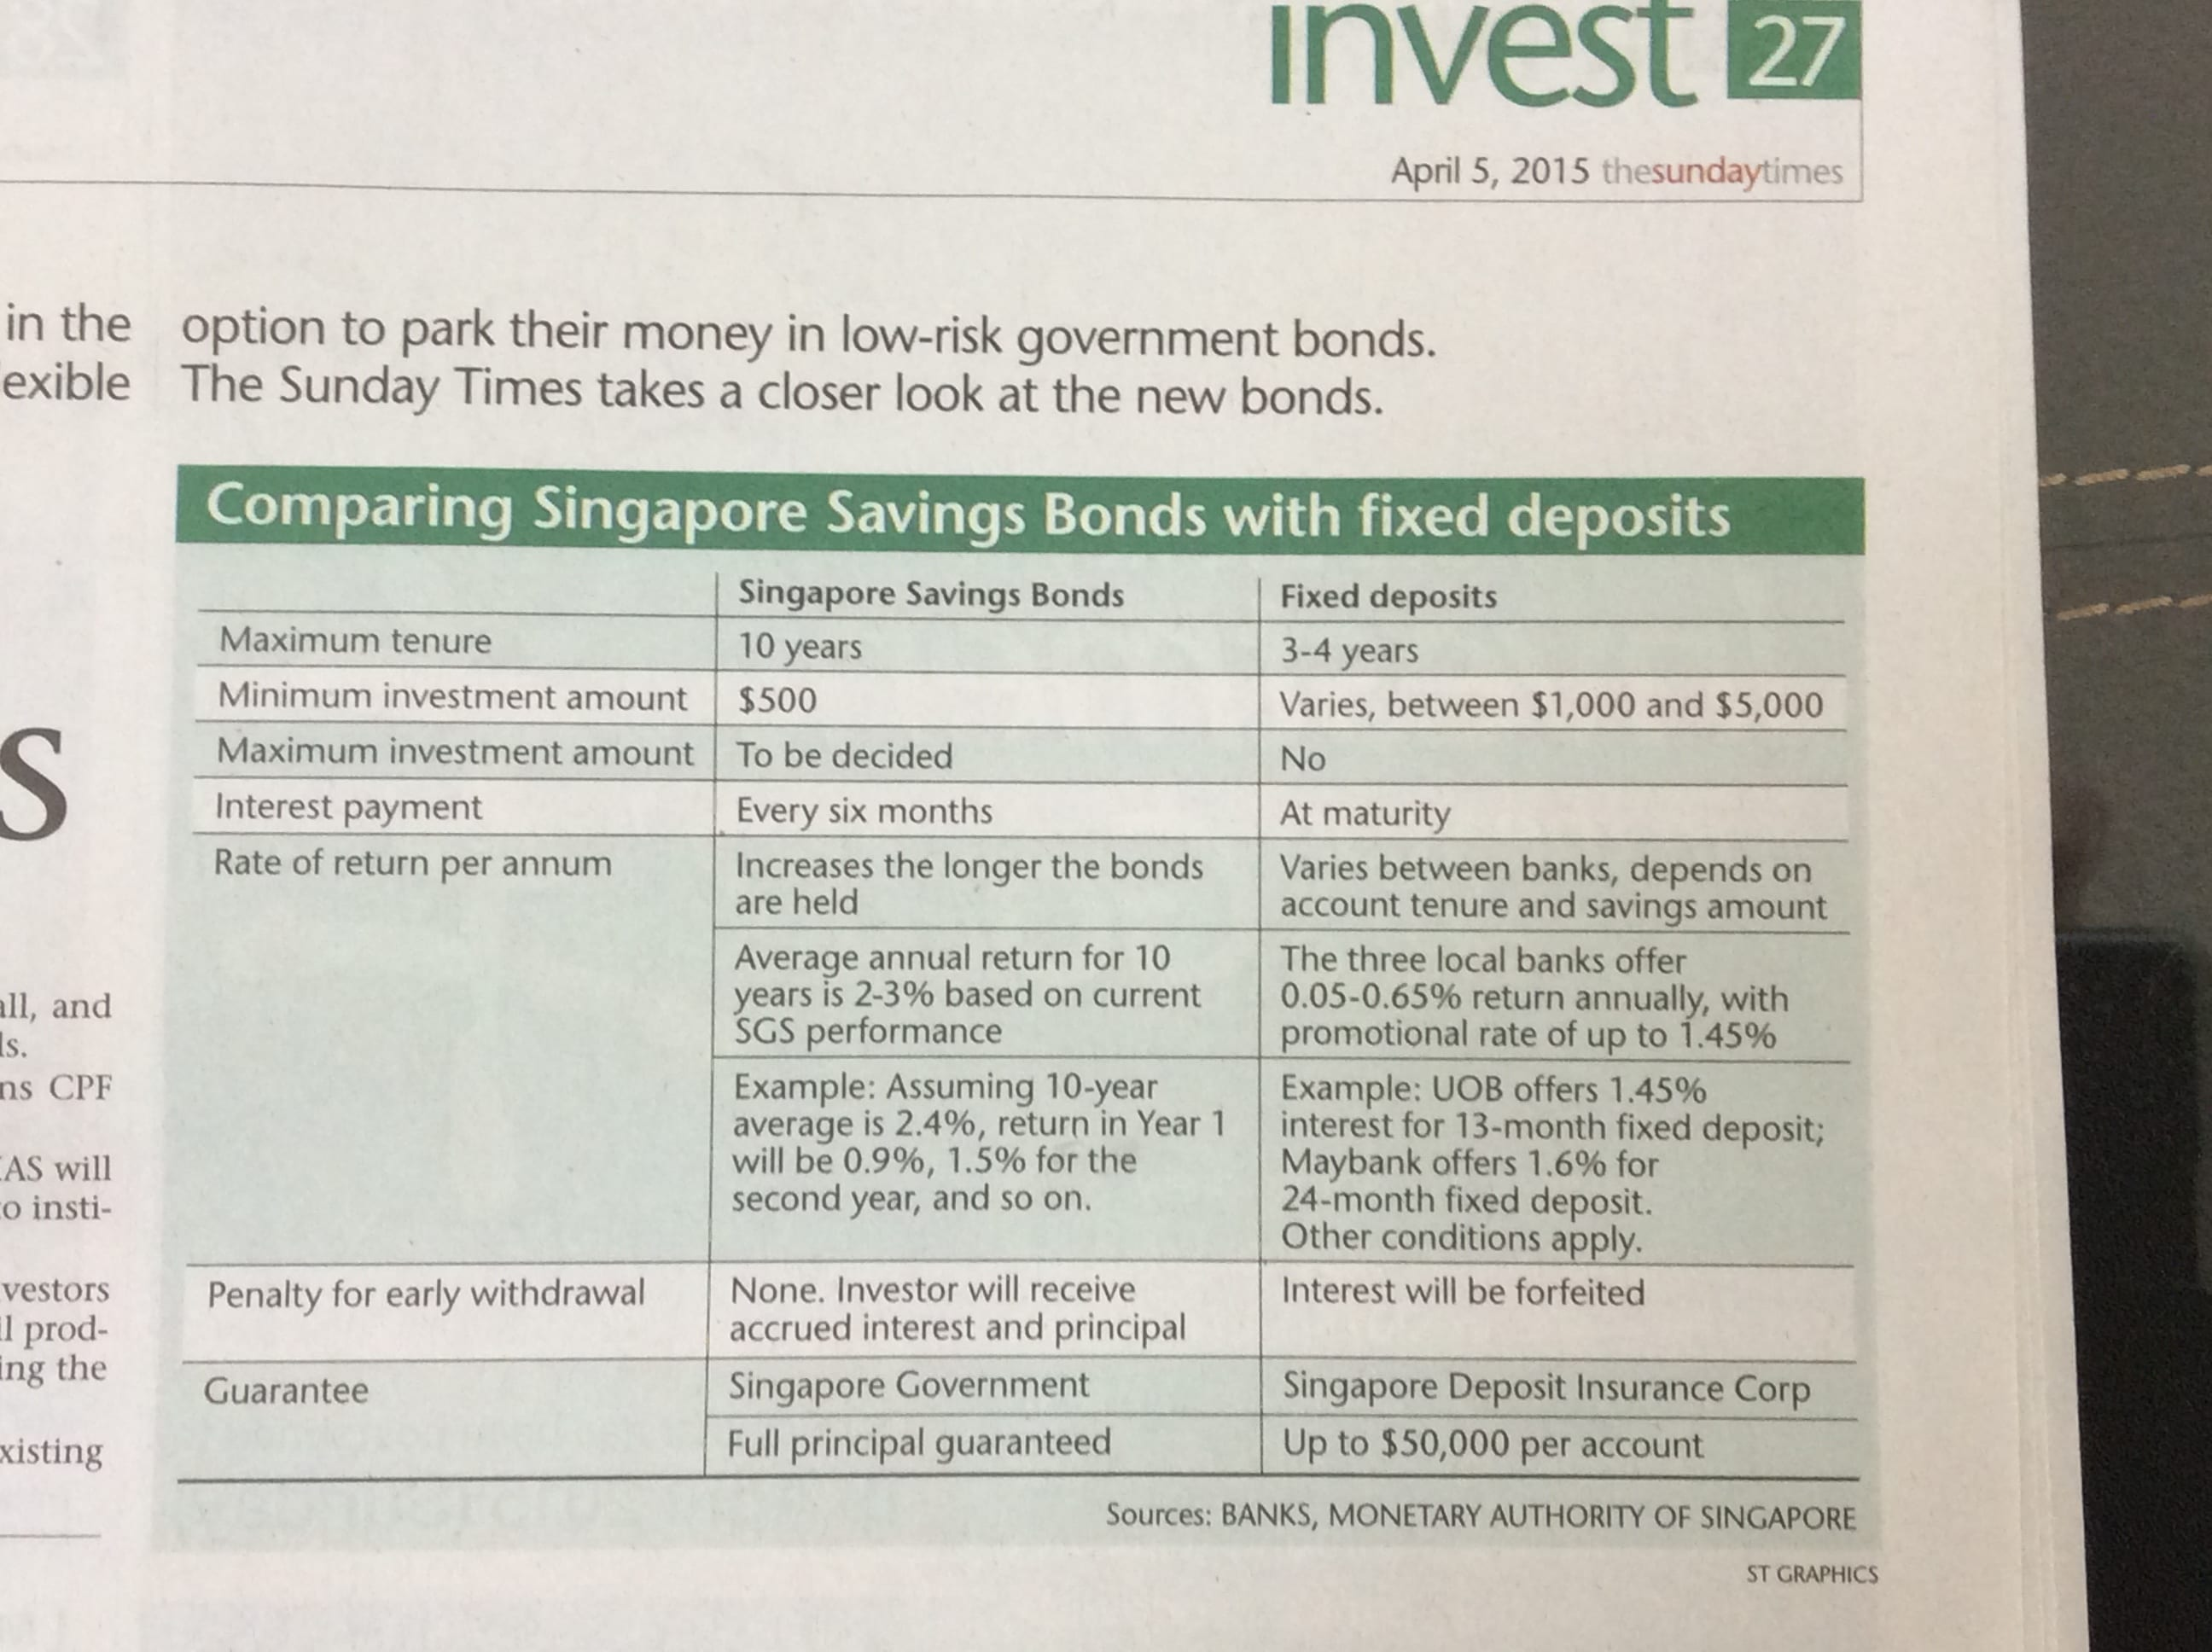 Singapore Savings Bonds (SSB)